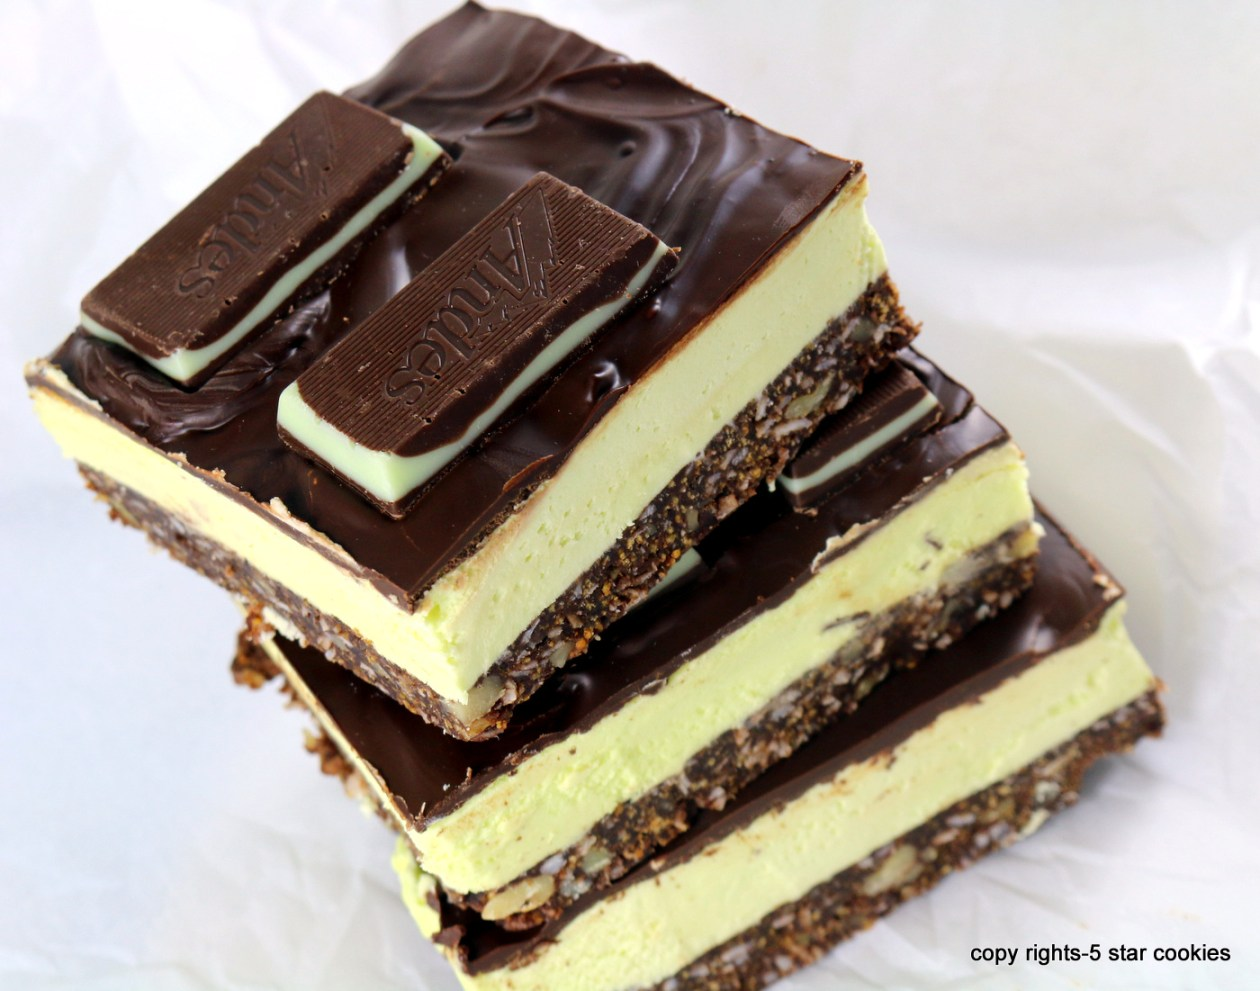 Mint Nanaimo Bars from the best food blog 5starcookies -enjoy and share